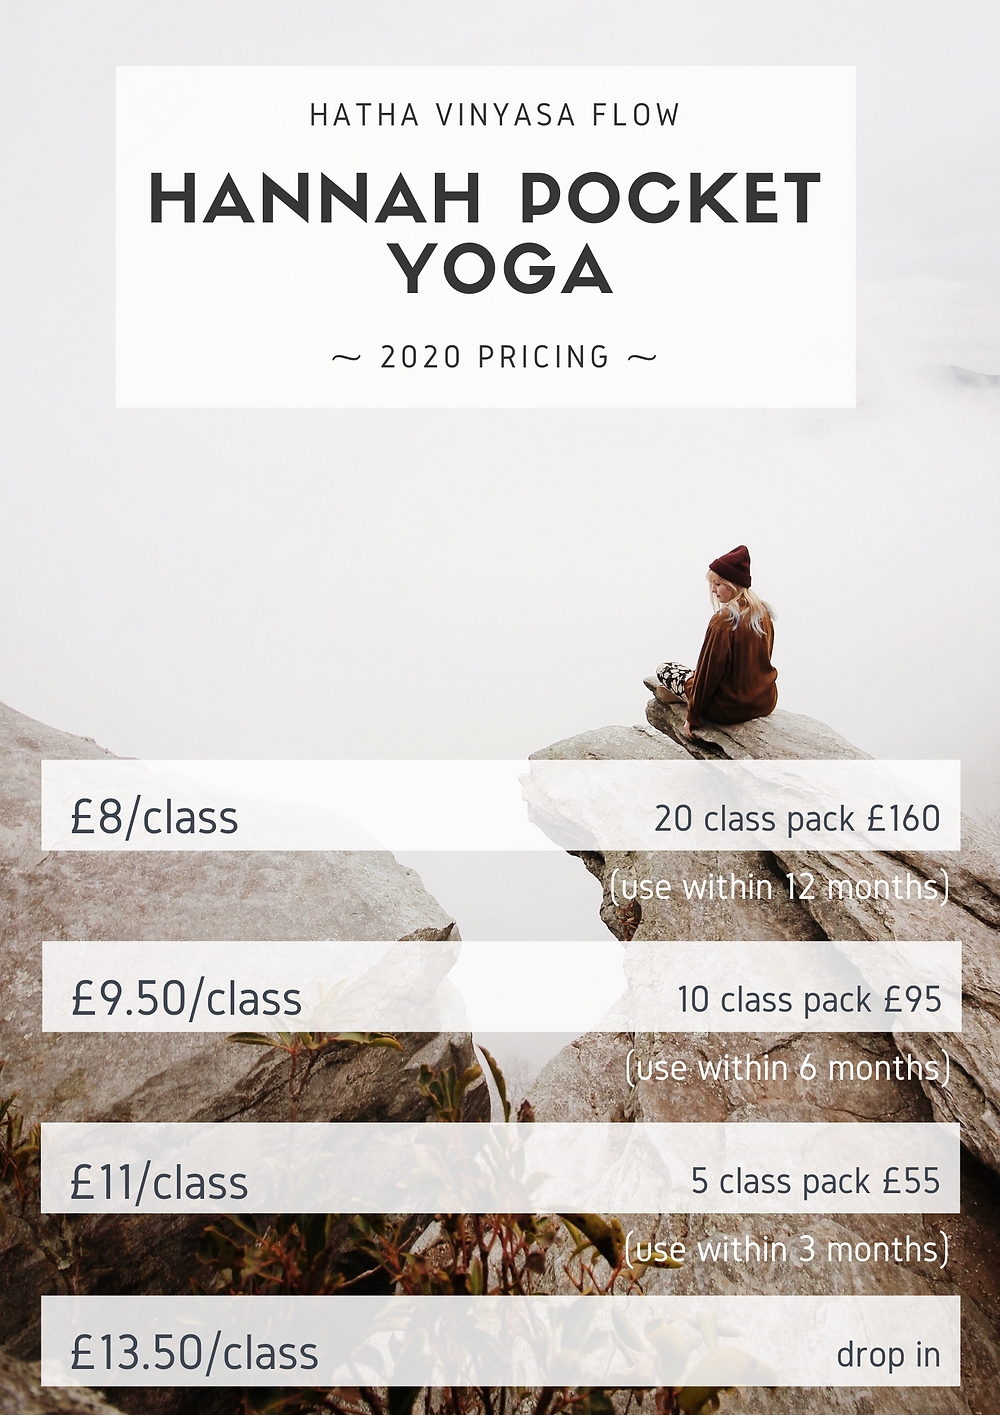 Hannah Pocket Yoga Balham Class Pricing, Class Packs and Concessions